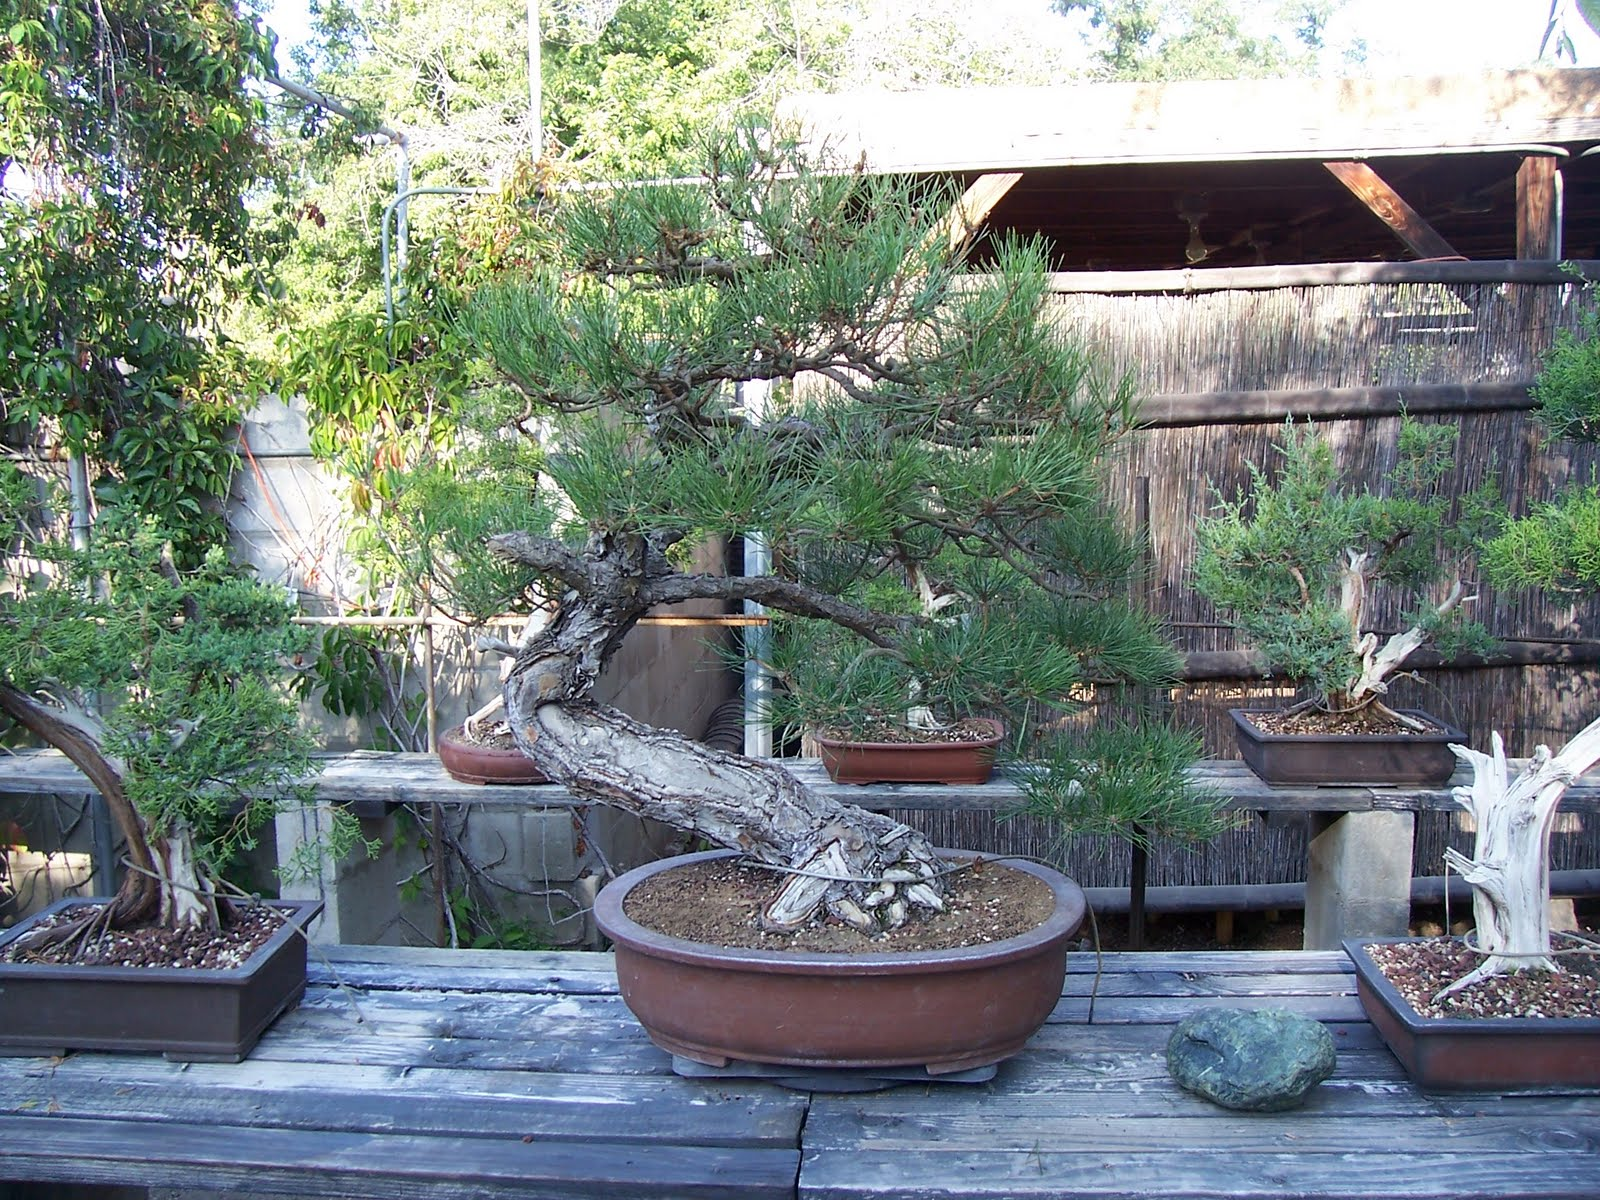 bonsaibp's bonsai blog: A walk through the nursery